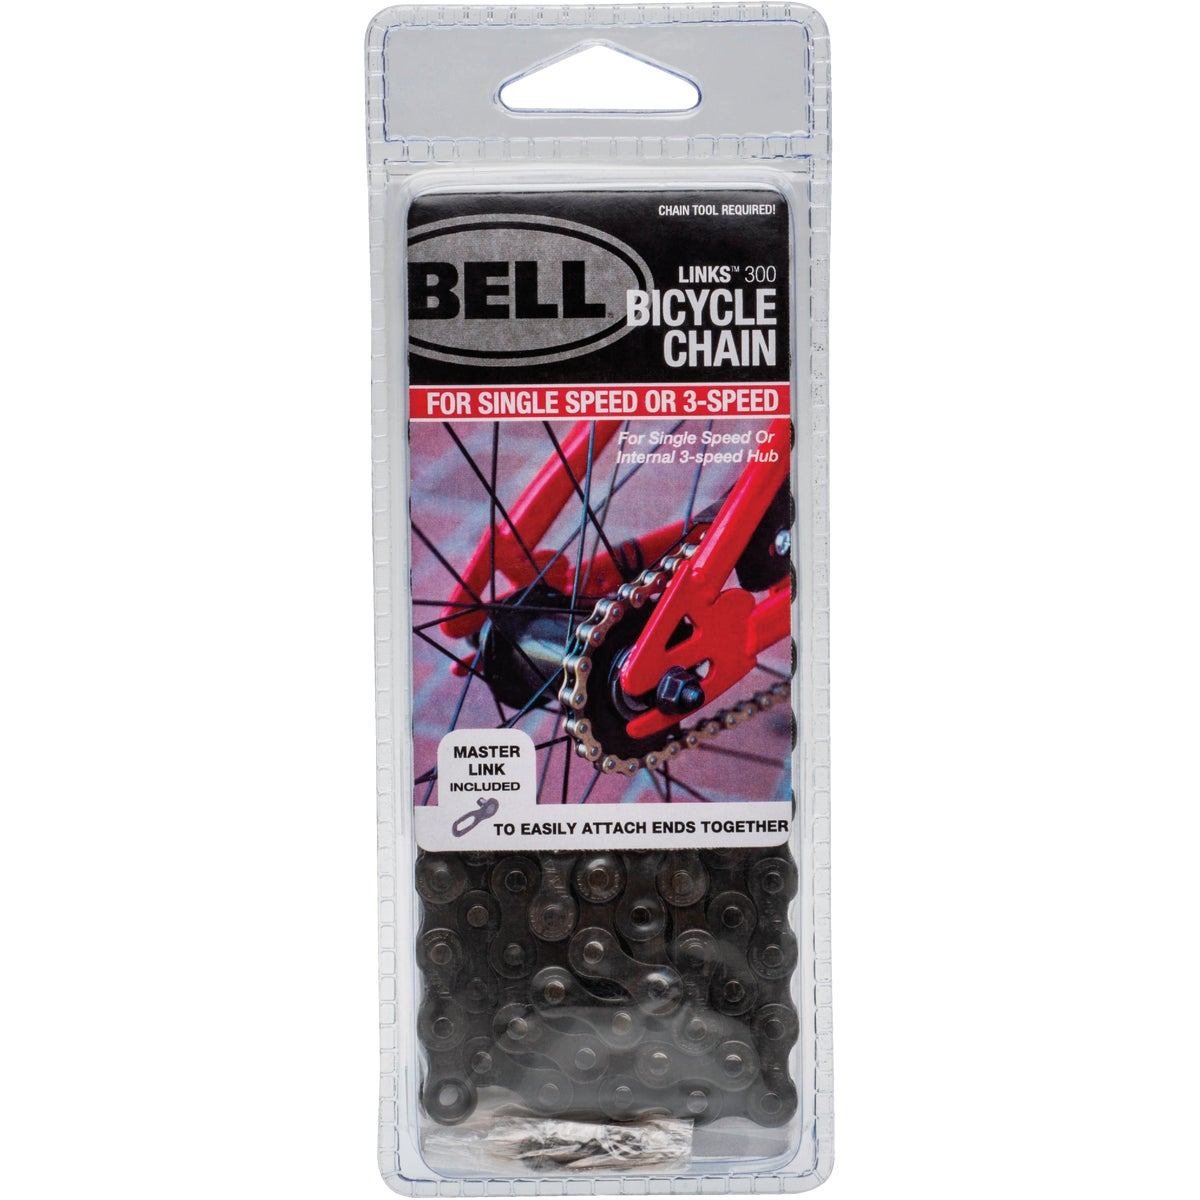 1/2X1/8 BIKE CHAIN - 7015885 by Bell Sports